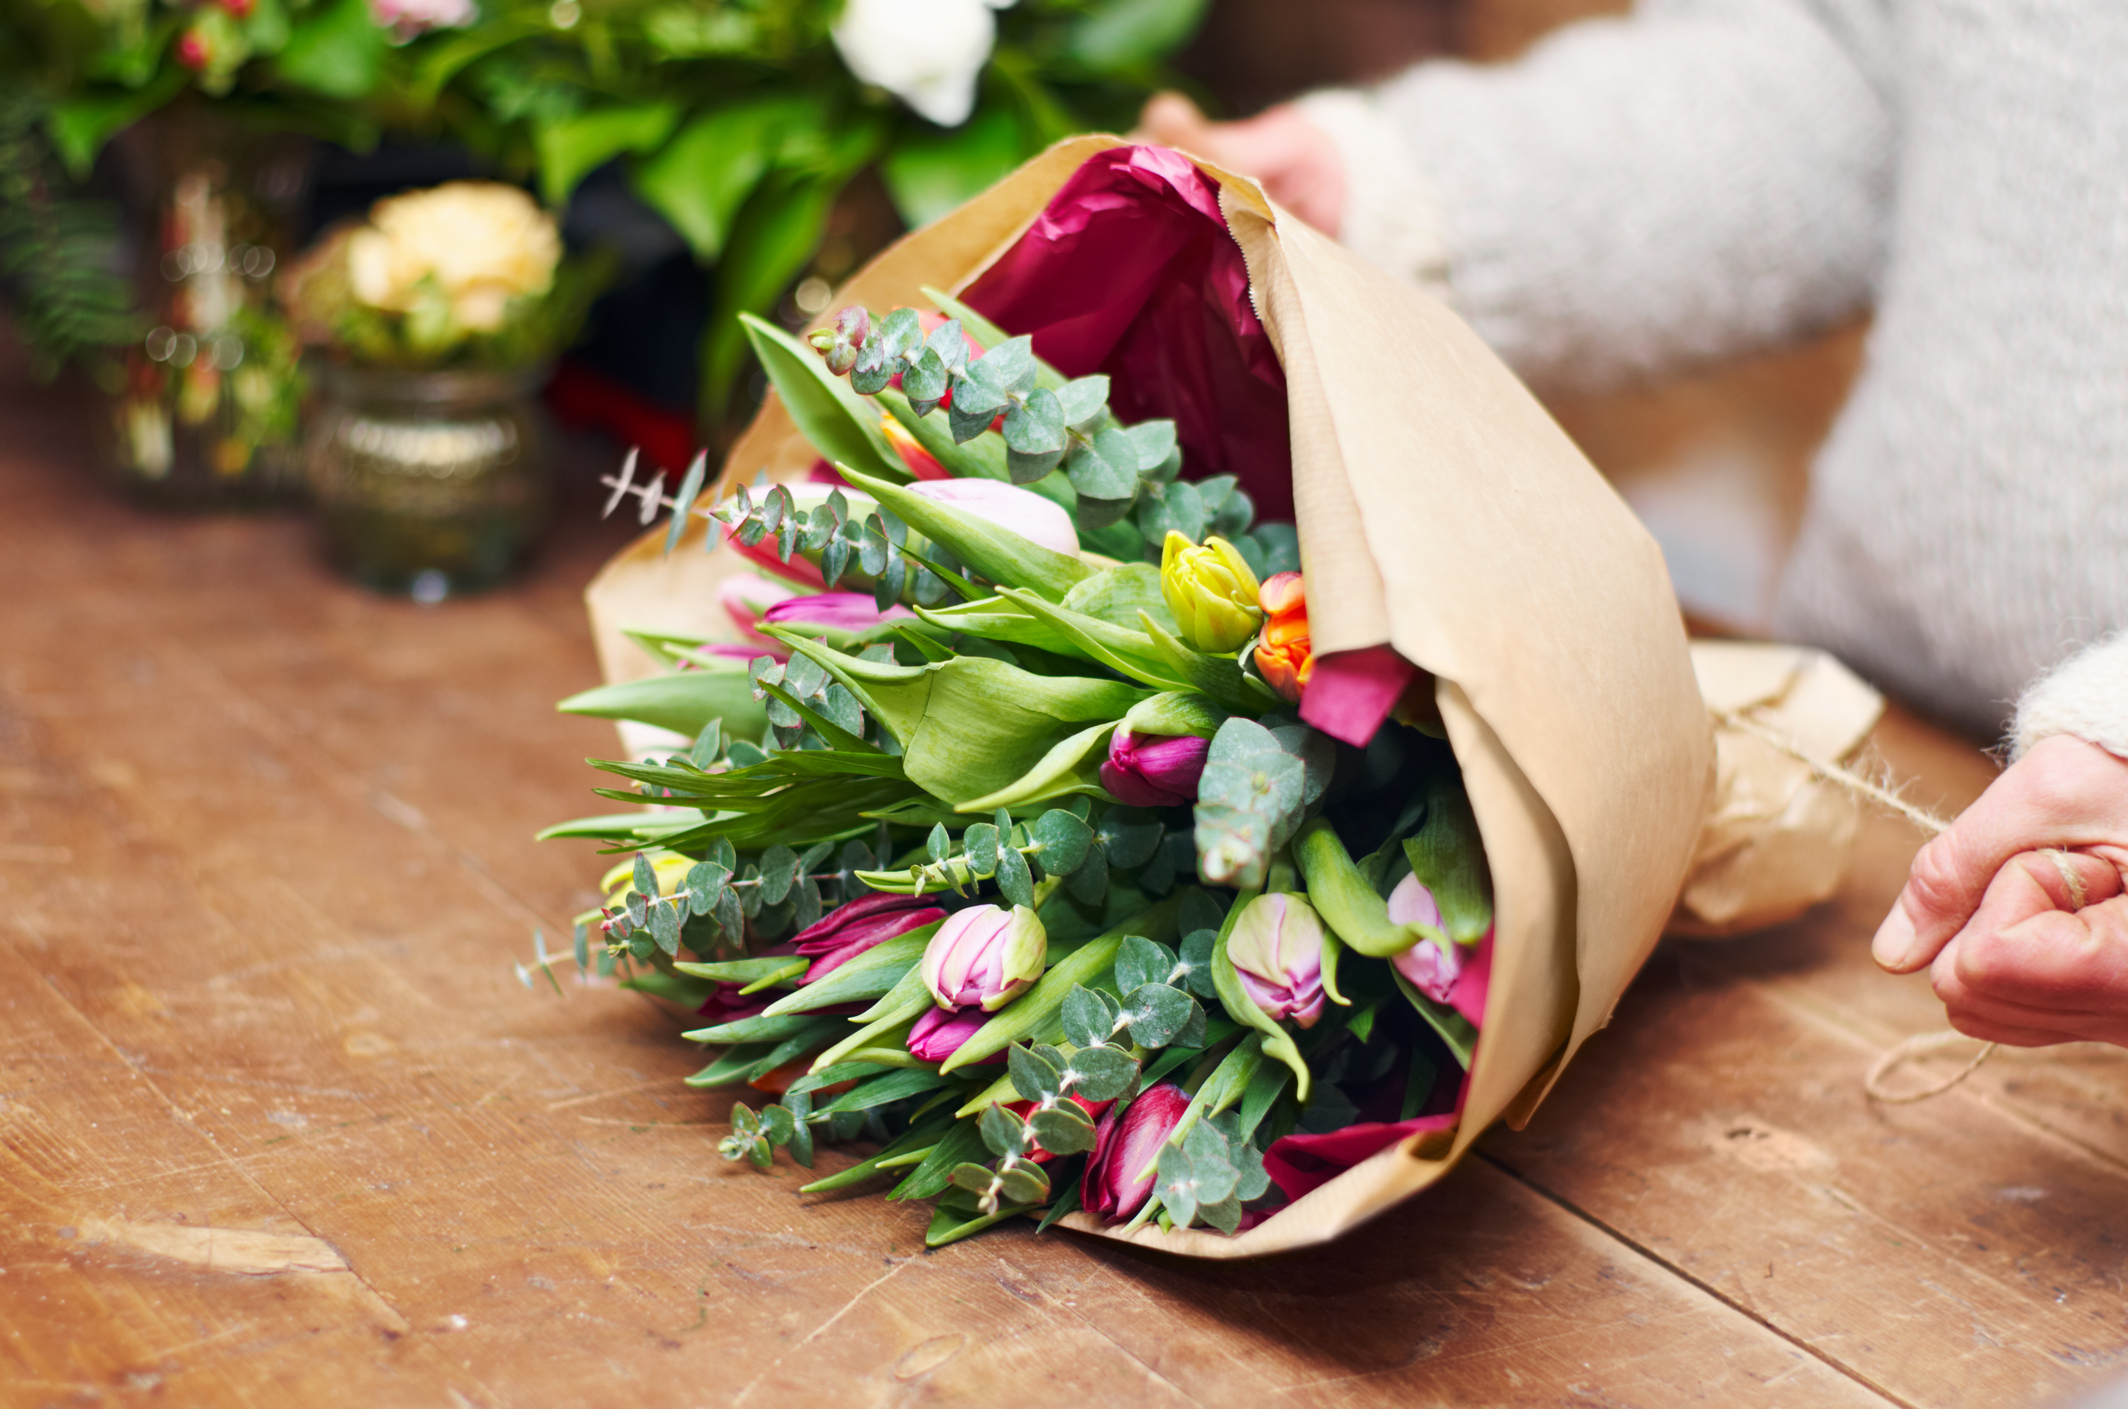 Science just uncovered one very good reason to buy yourself a bouquet of flowers today